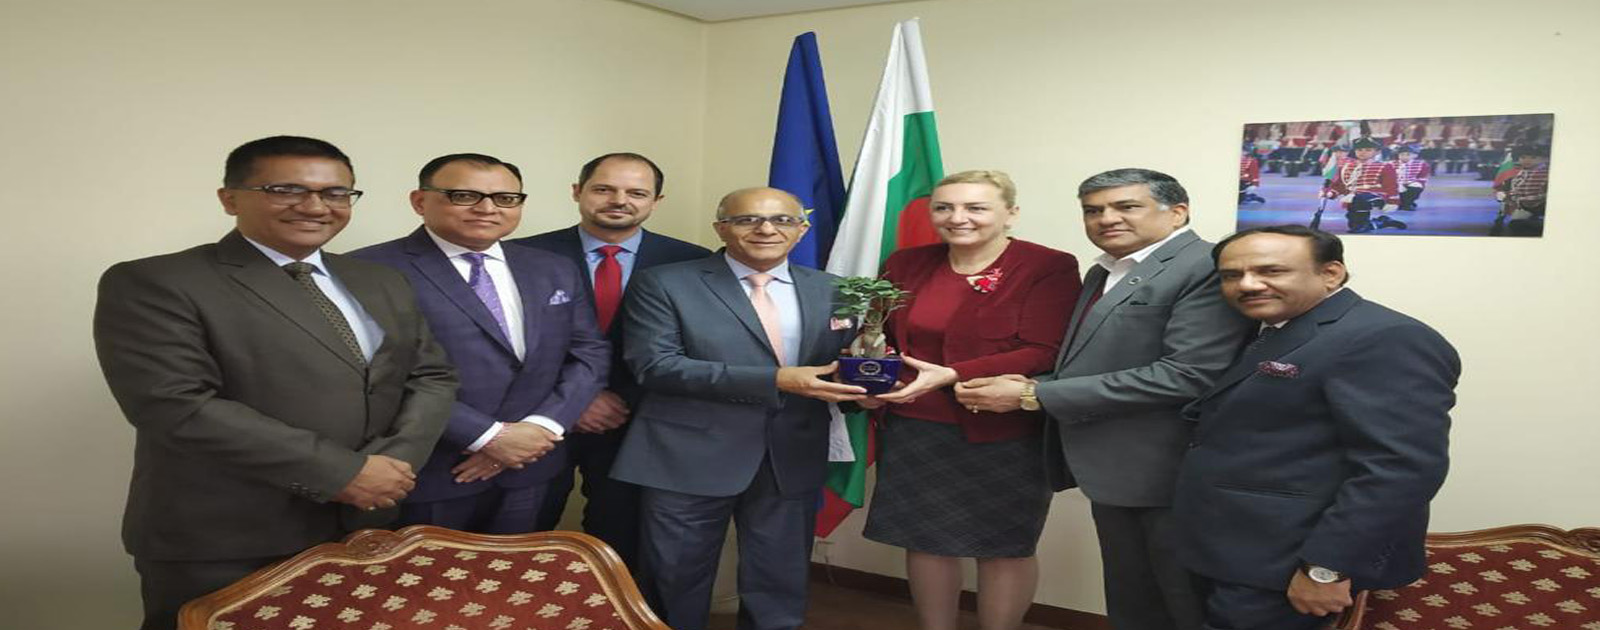 Call on Meeting with H.E. Mrs. Eleonora Dimitrova, Ambassador, Embassy of the Republic of Bulgaria